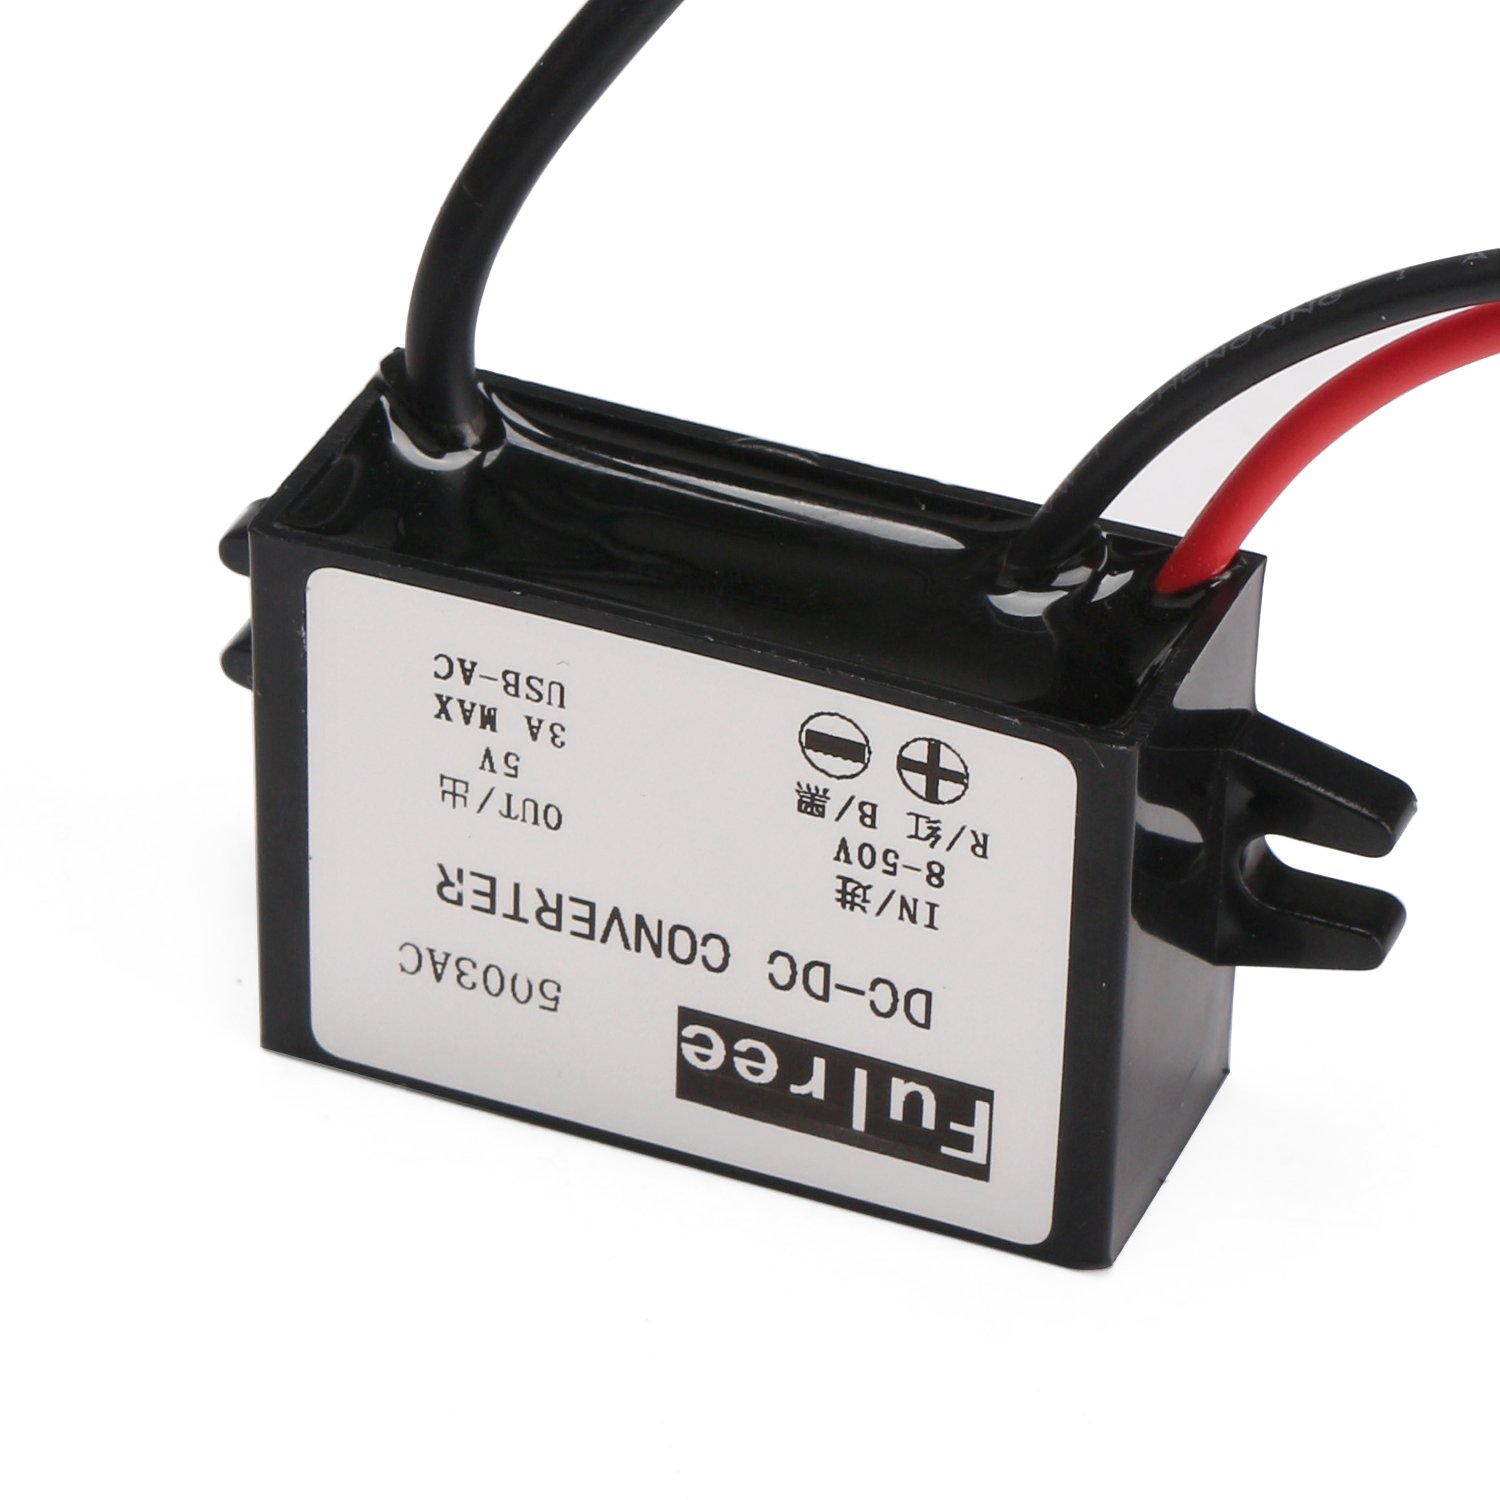 DC-DC Buck Converter 3A Volatge Adapter Power Supply Module Step Down Voltage Regulator 12V//24V//36V to 5V Voltage Transformer with USB+Micro USB MP3 MP4 Car Displayer GPS